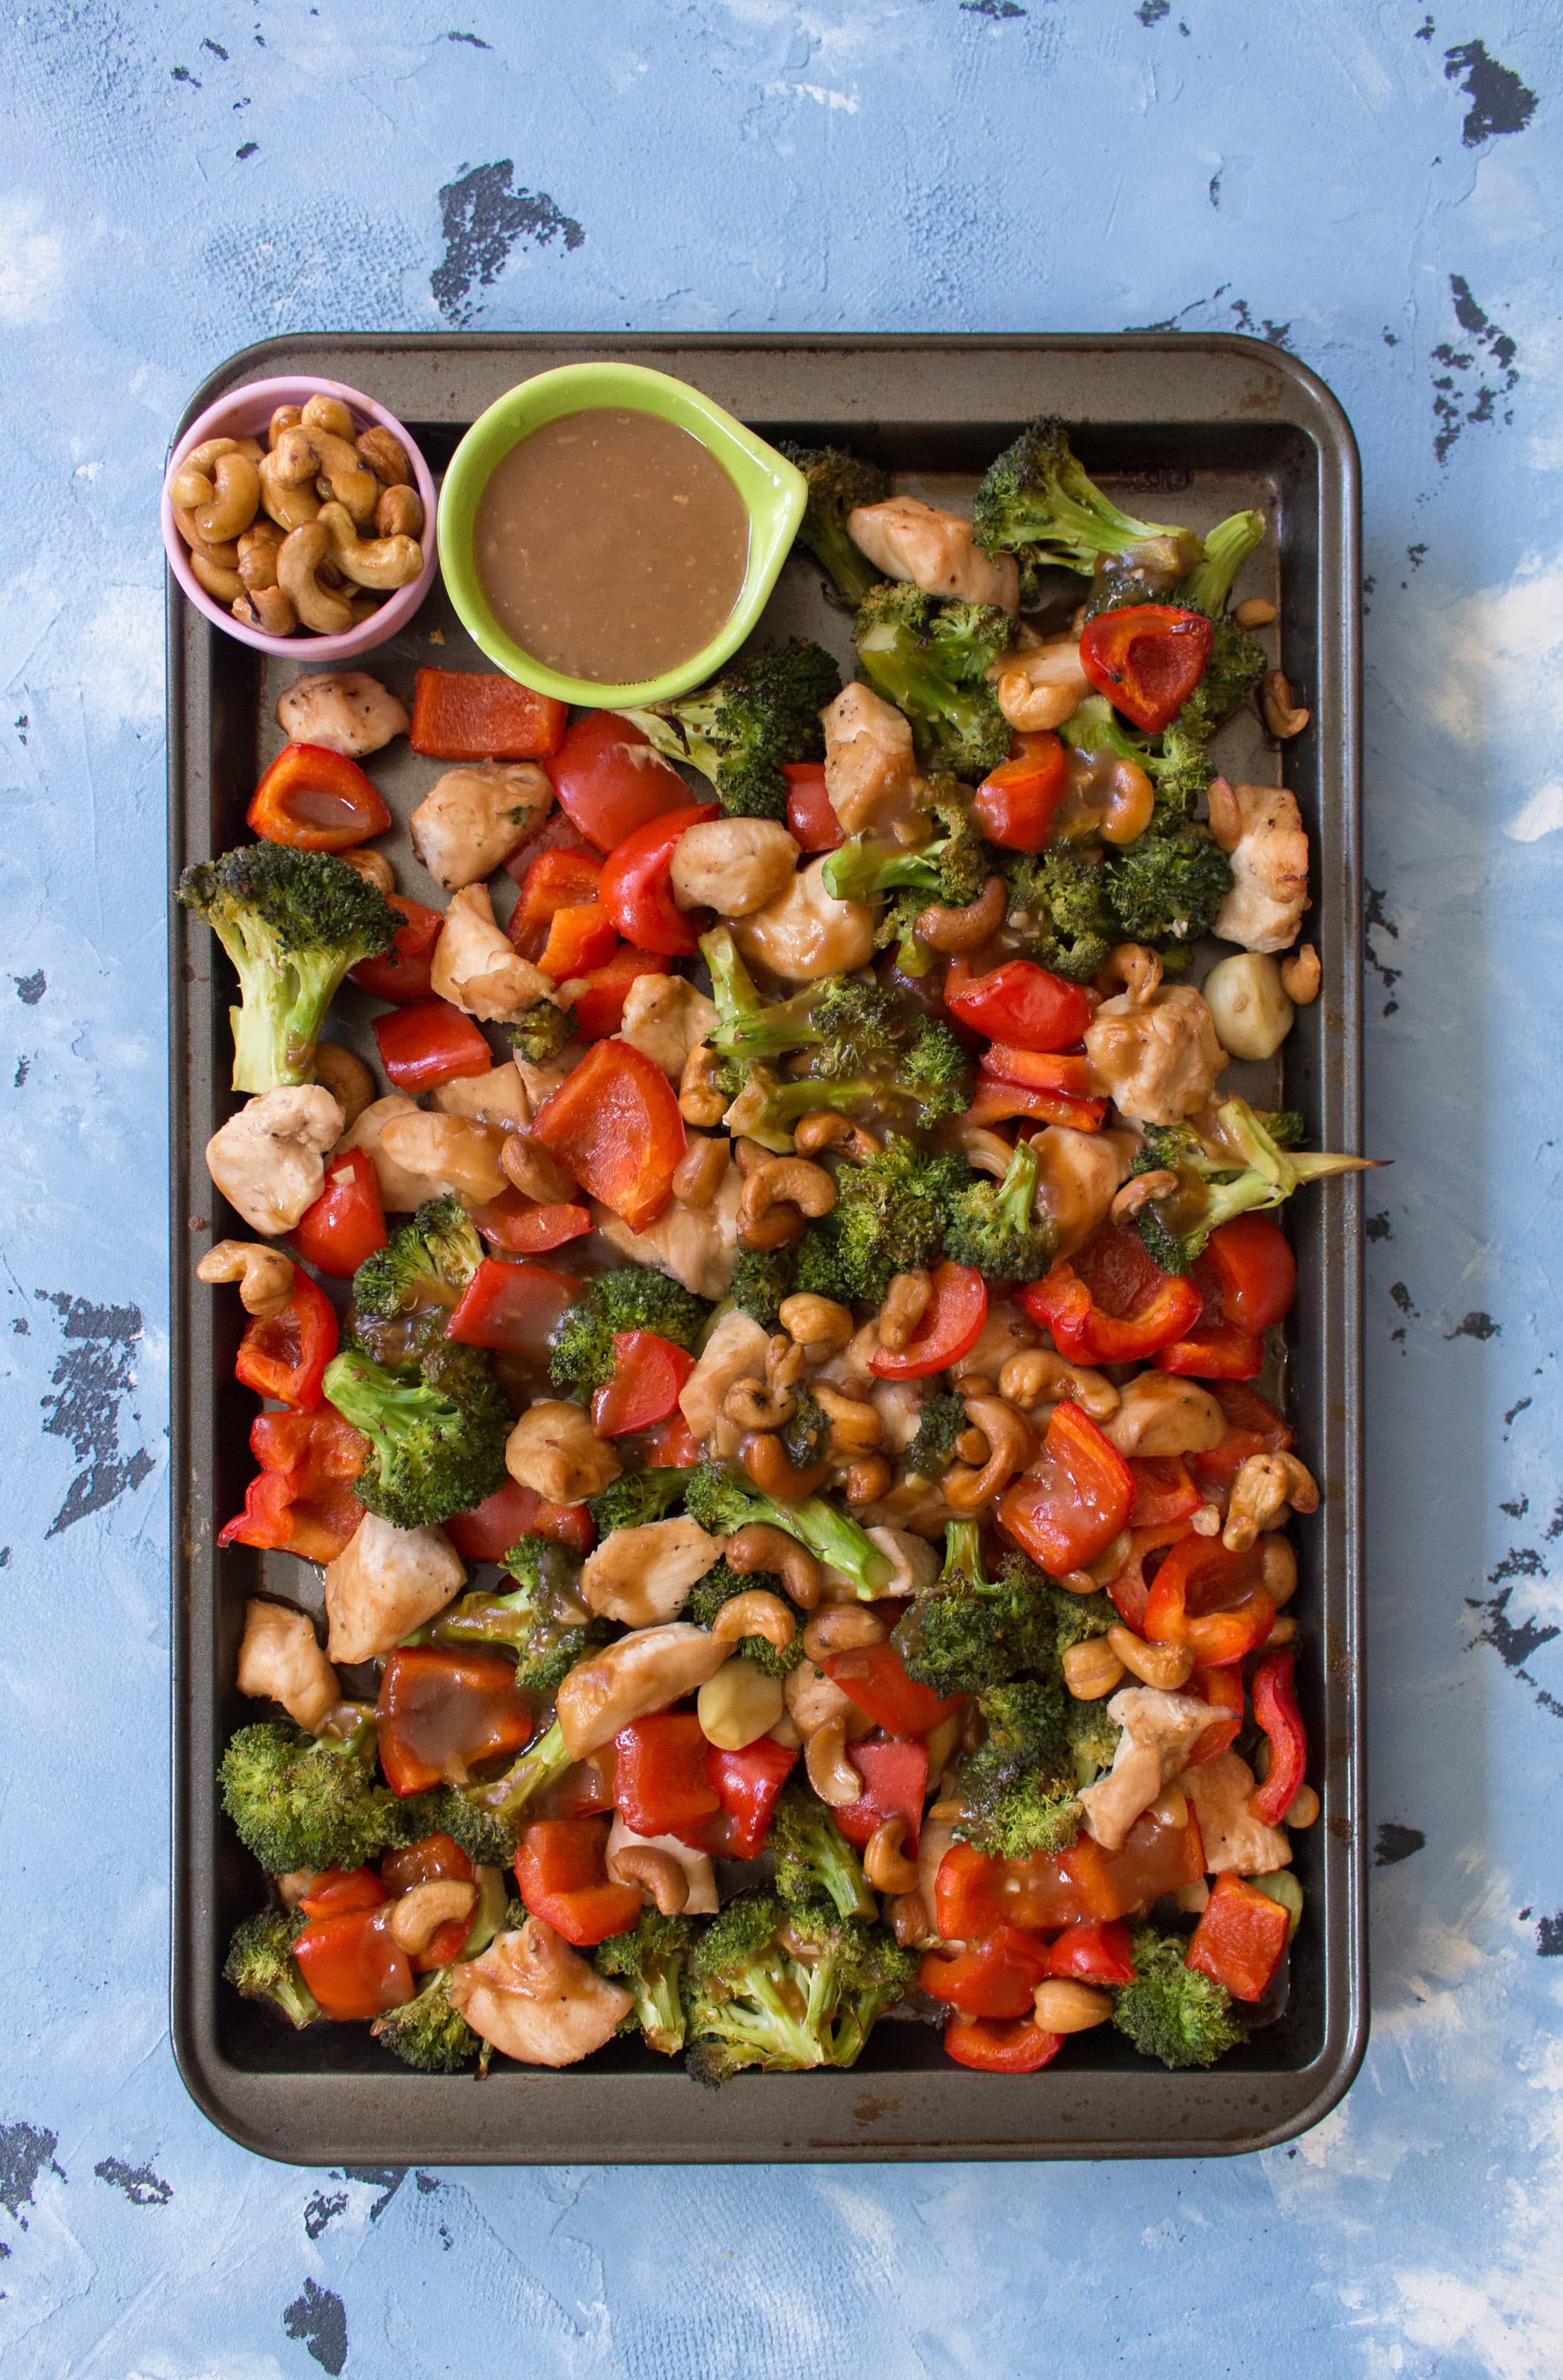 Sheet pan cashew chicken with veggies meal prep carmy run eat this sheet pan cashew chicken with veggies is so easy and fast to make my forumfinder Images